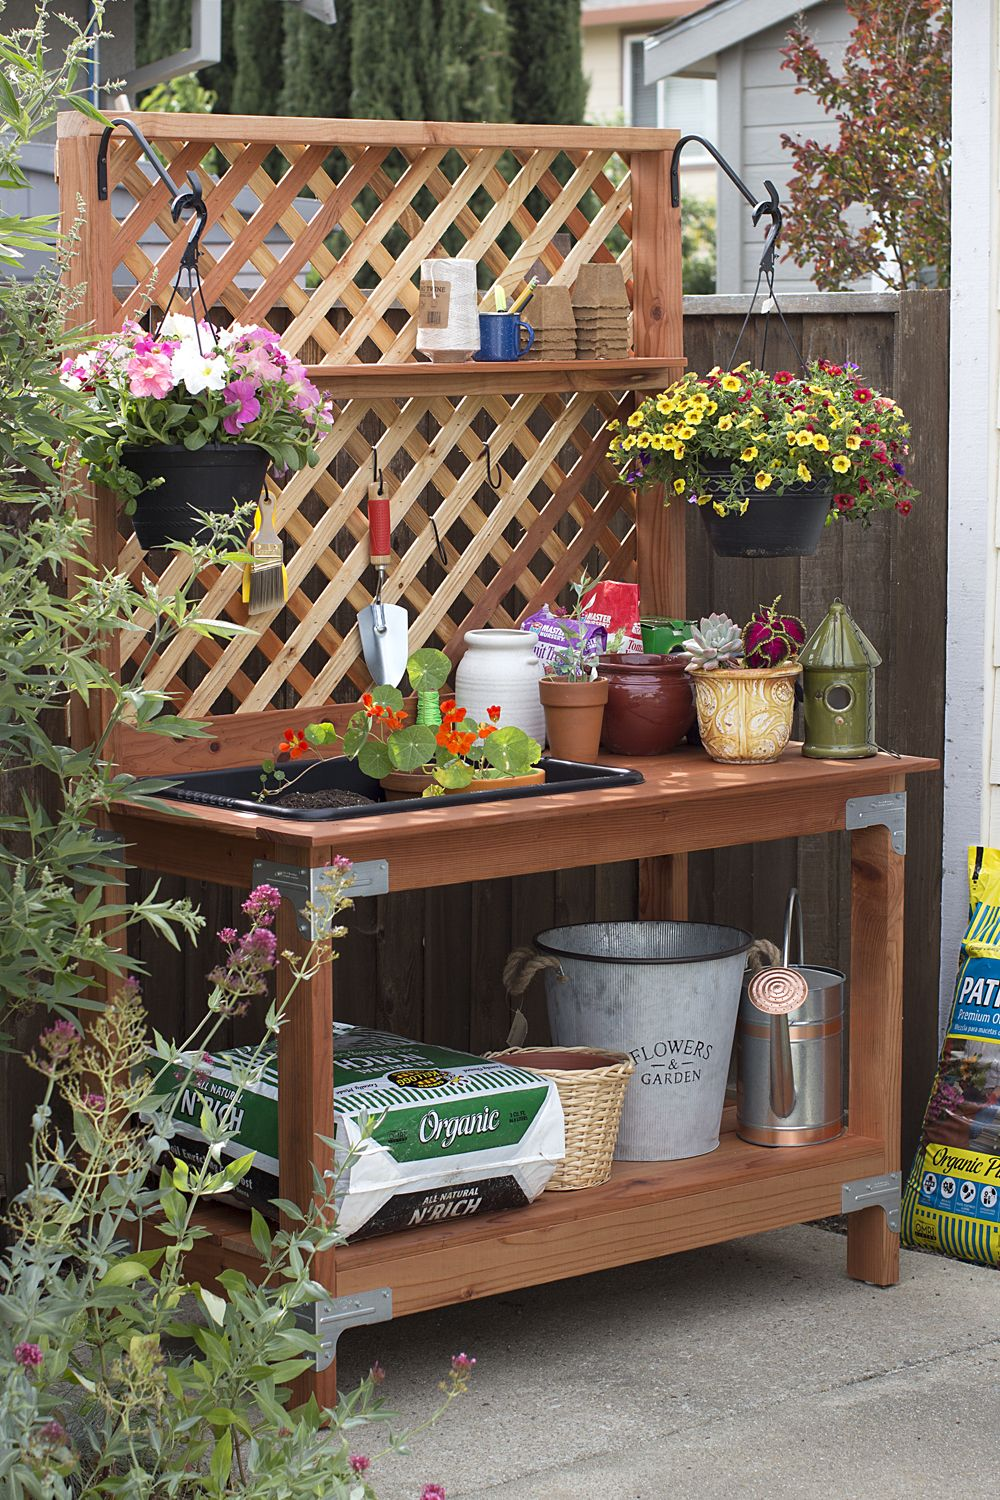 16 free potting bench plans to organized and make for Garden potting bench ideas